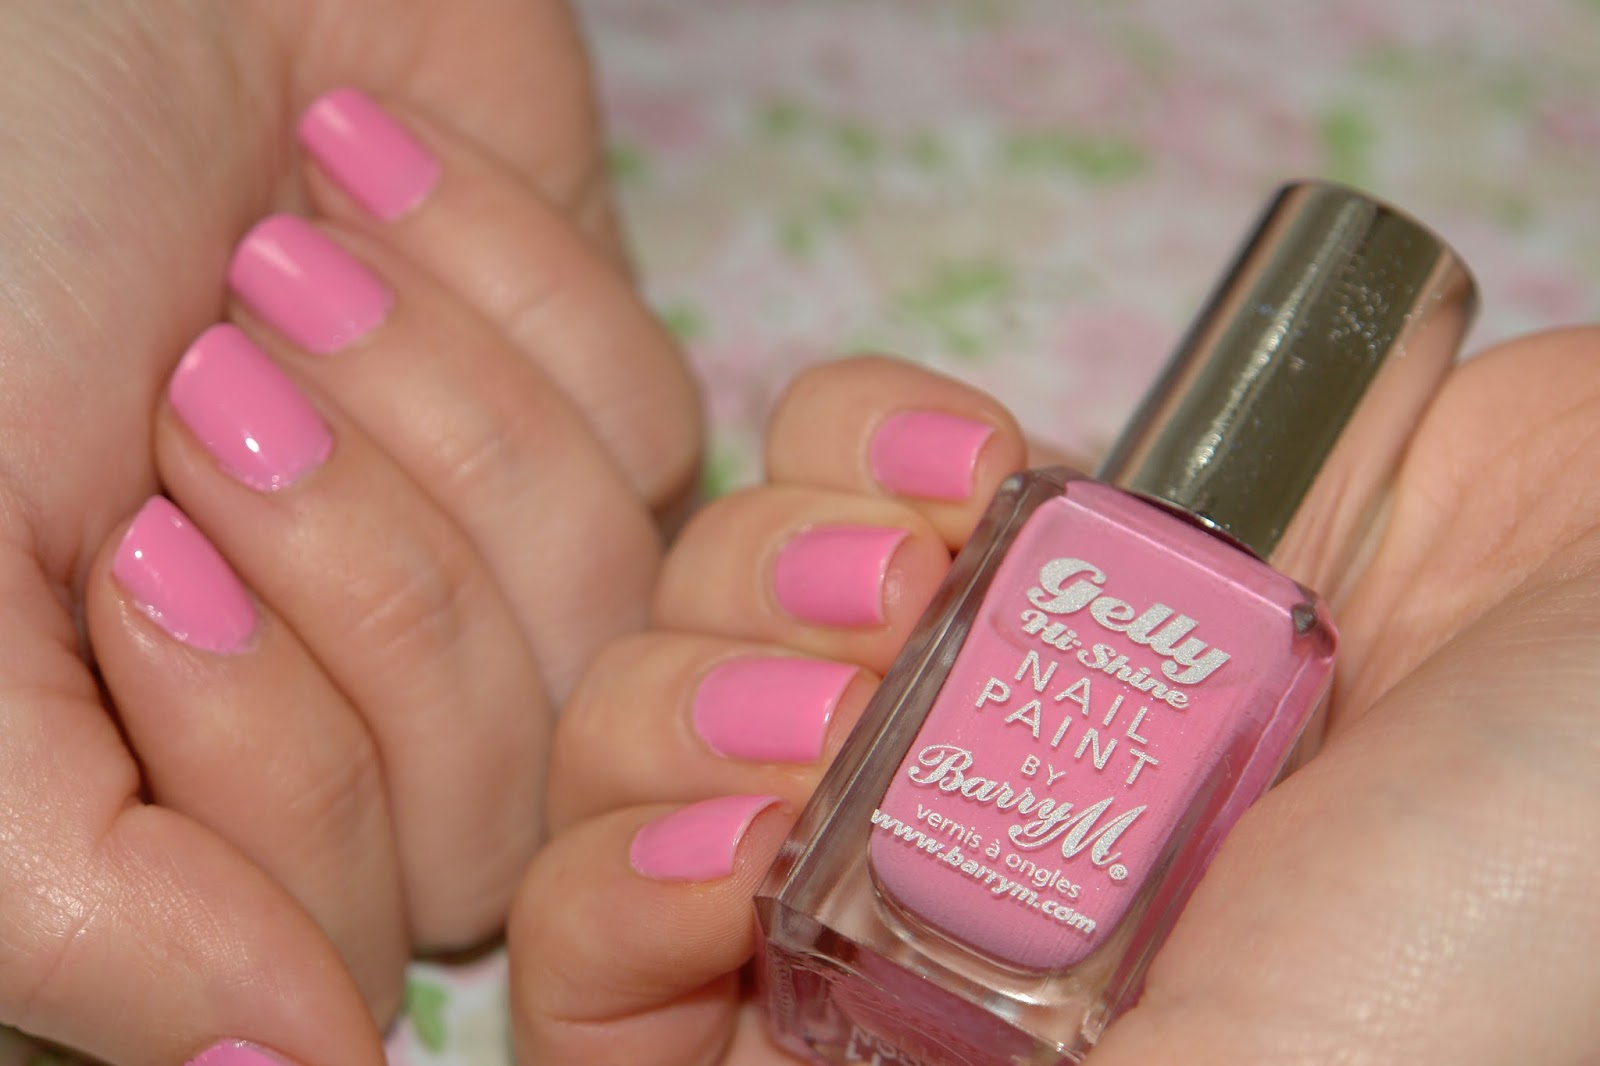 NAILS: Barry M Dragon Fruit, Barry M Gelly Nail Effects in Dragon Fruit, review, swatches, Barry M, nail polish, nails, NOTD, pink, beauty blog, UK top blogger